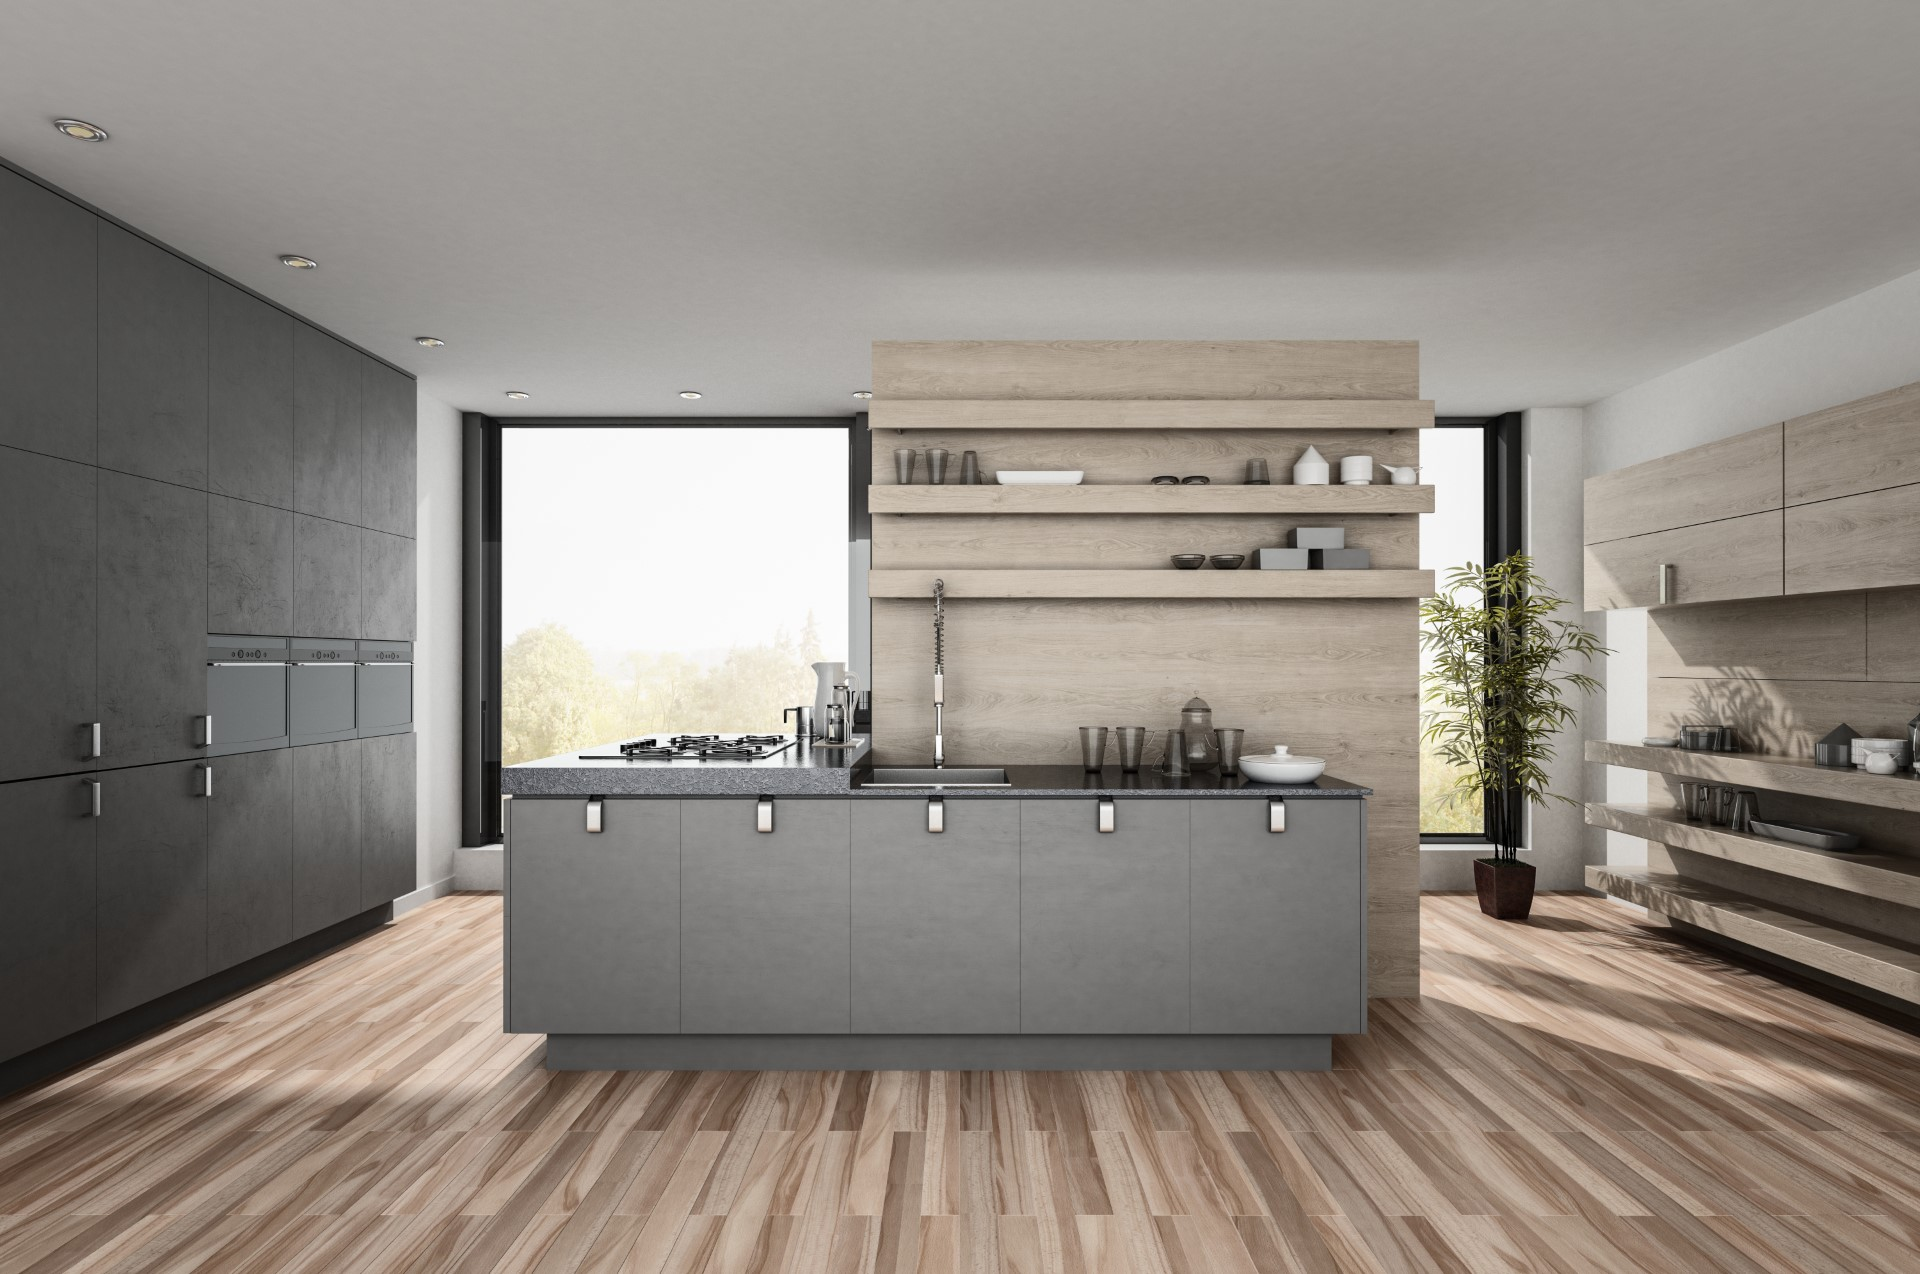 This bizarre kitchen is sure to catch your attention from its minimalist modern roots and decor. It has all the functionalities you need including hidden storage, space saving stovetop, and storage for your dishes.